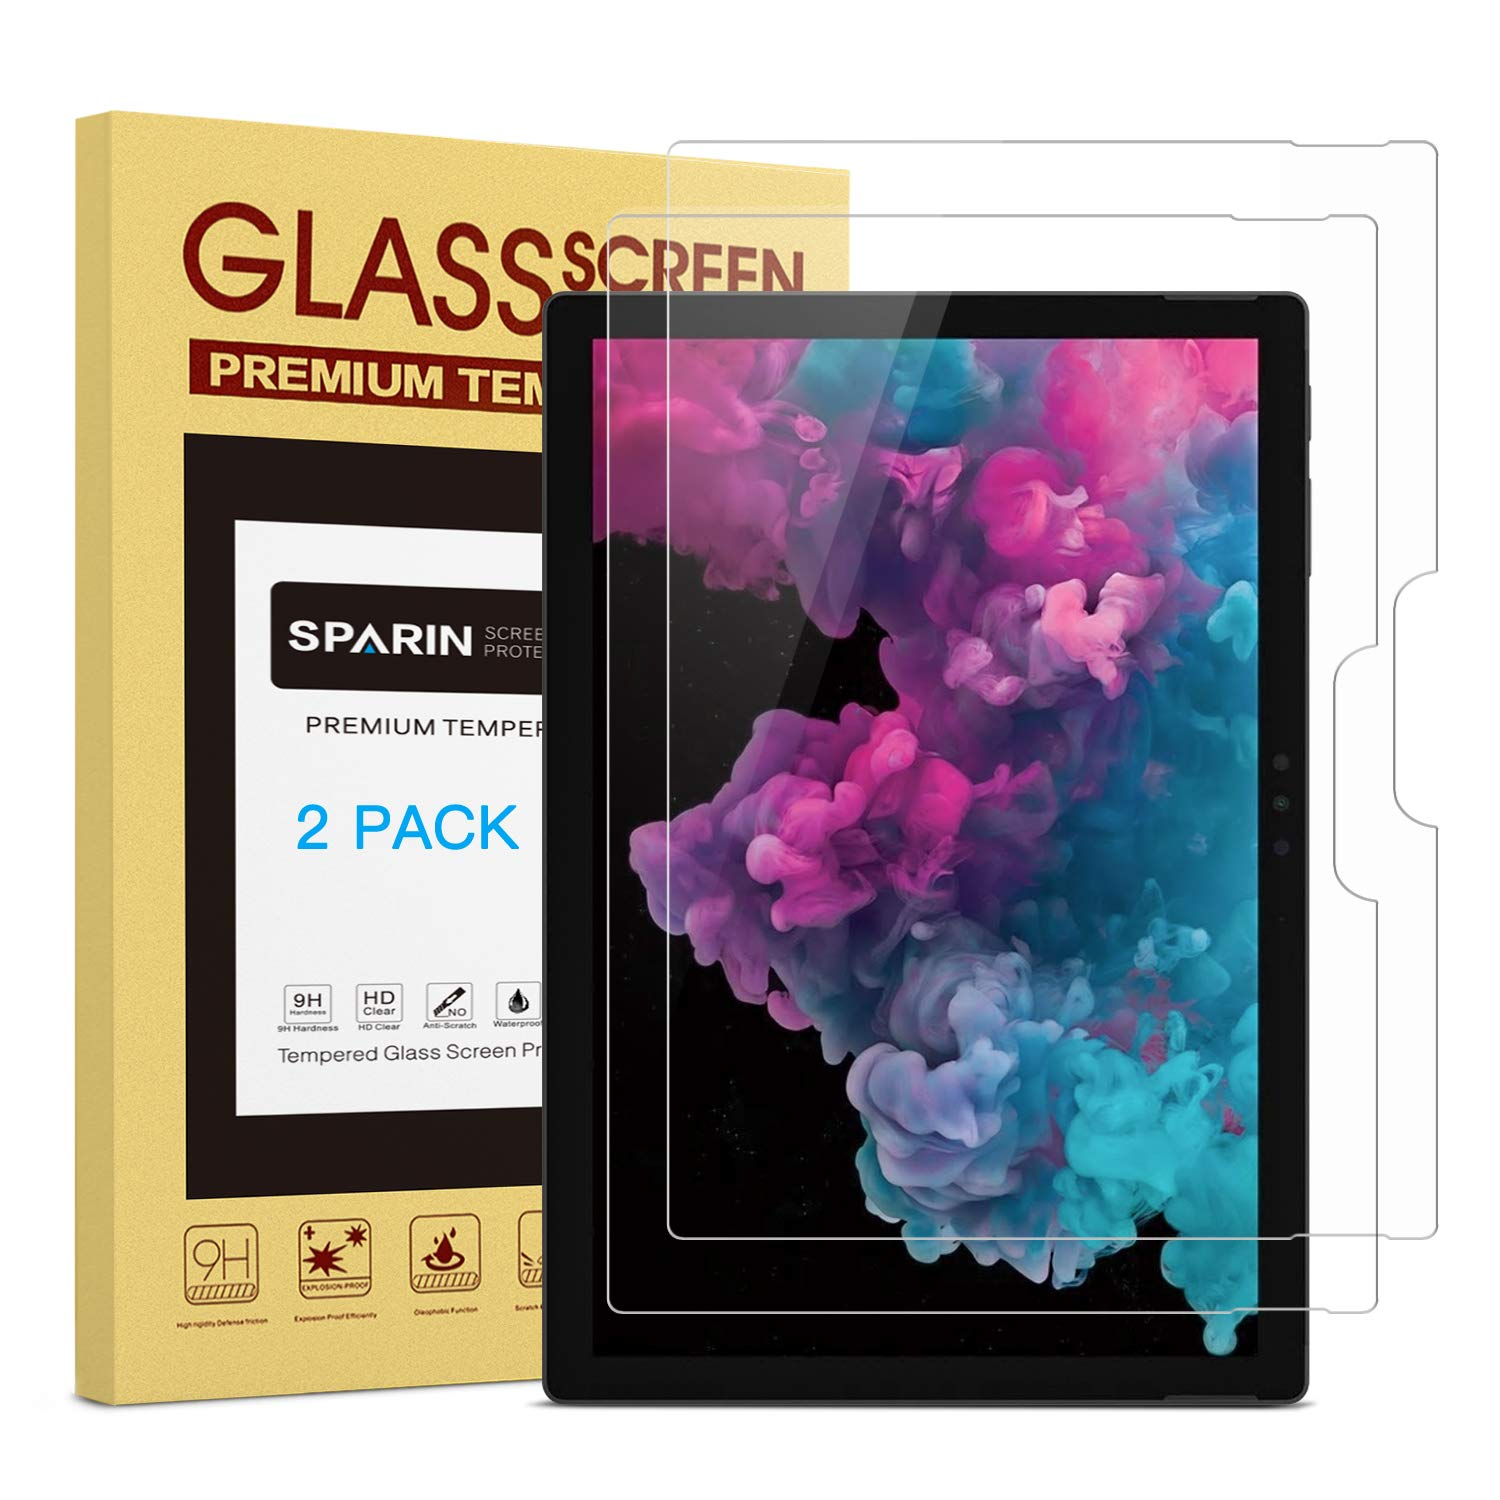 [2 Pack] Screen Protector for Surface Pro 6 / Surface Pro (5th Gen) / Surface Pro 4, SPARIN Tempered Glass Screen Protector with Surface Pen Compatible/Scratch Resistant